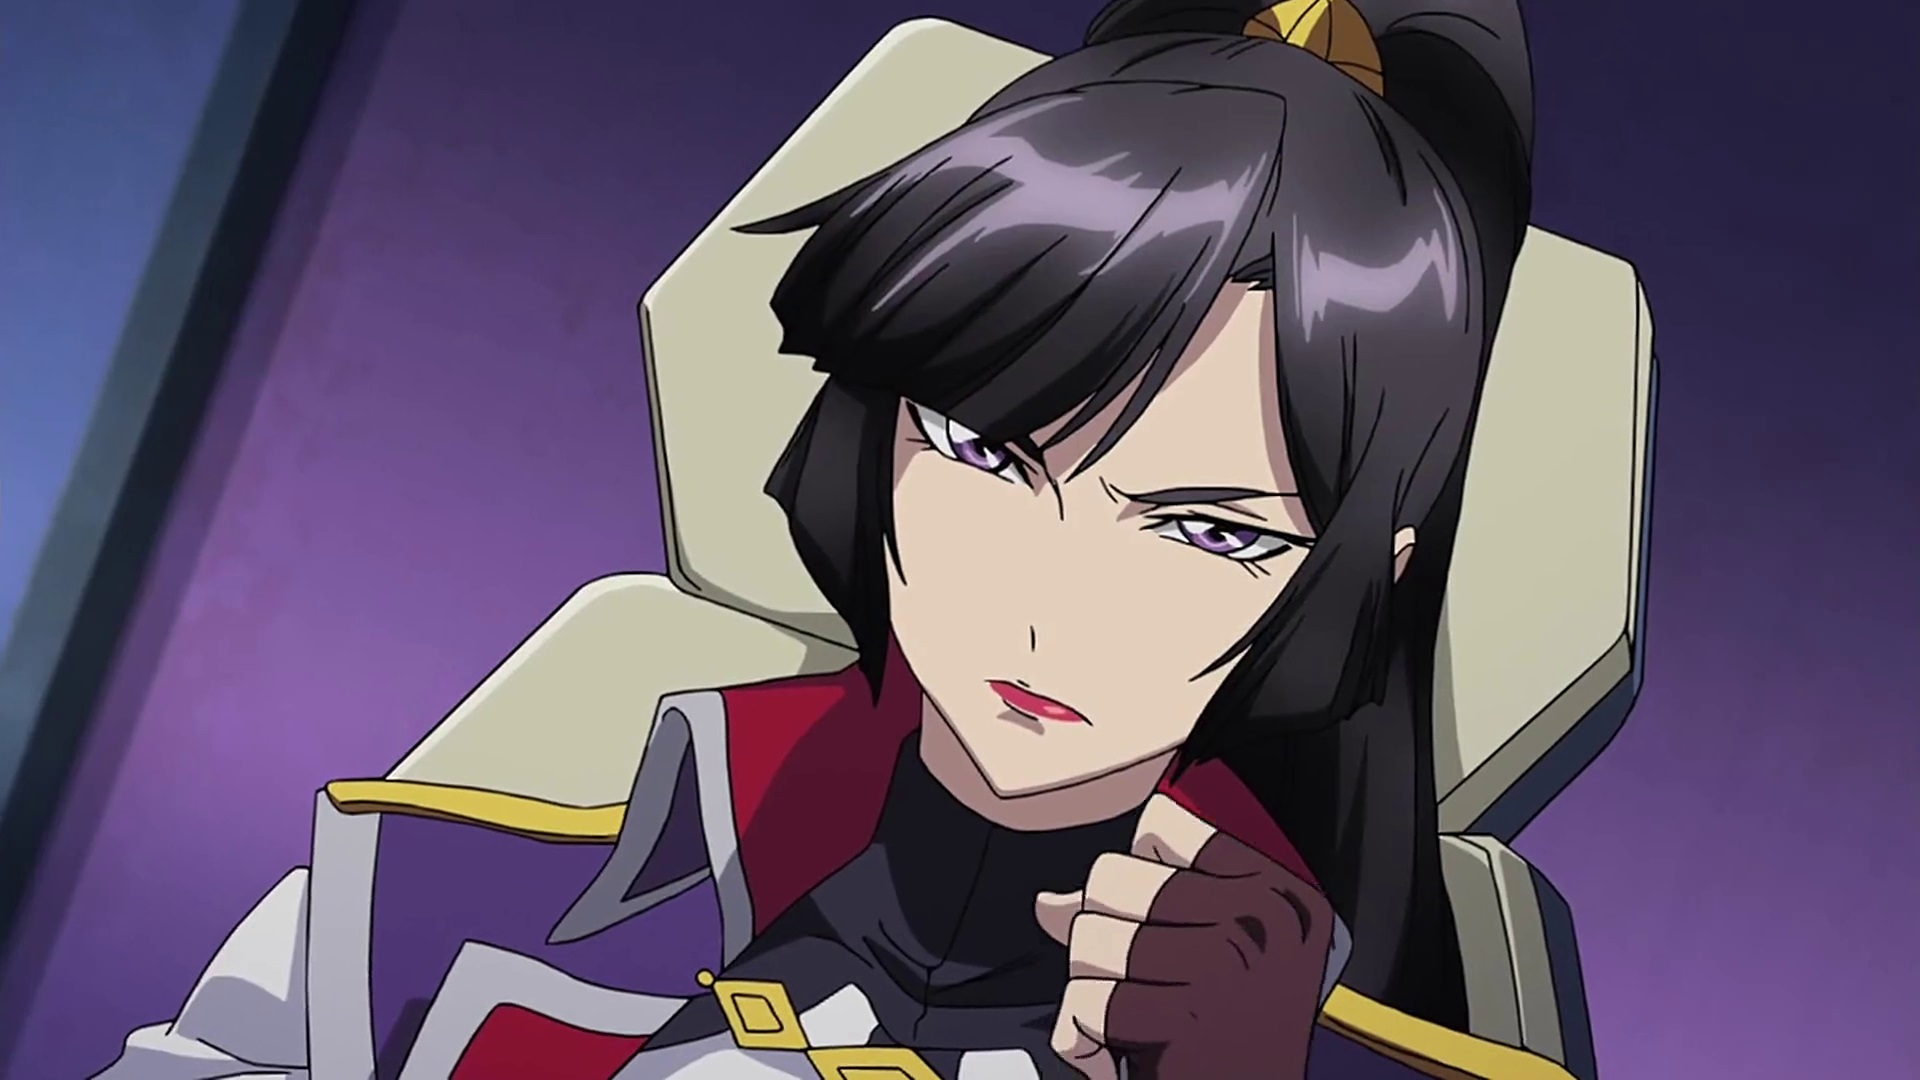 http://vignette3.wikia.nocookie.net/crossange/images/6/69/Cross_Ange_ep_2_Jill.jpg/revision/latest?cb=20141119112030